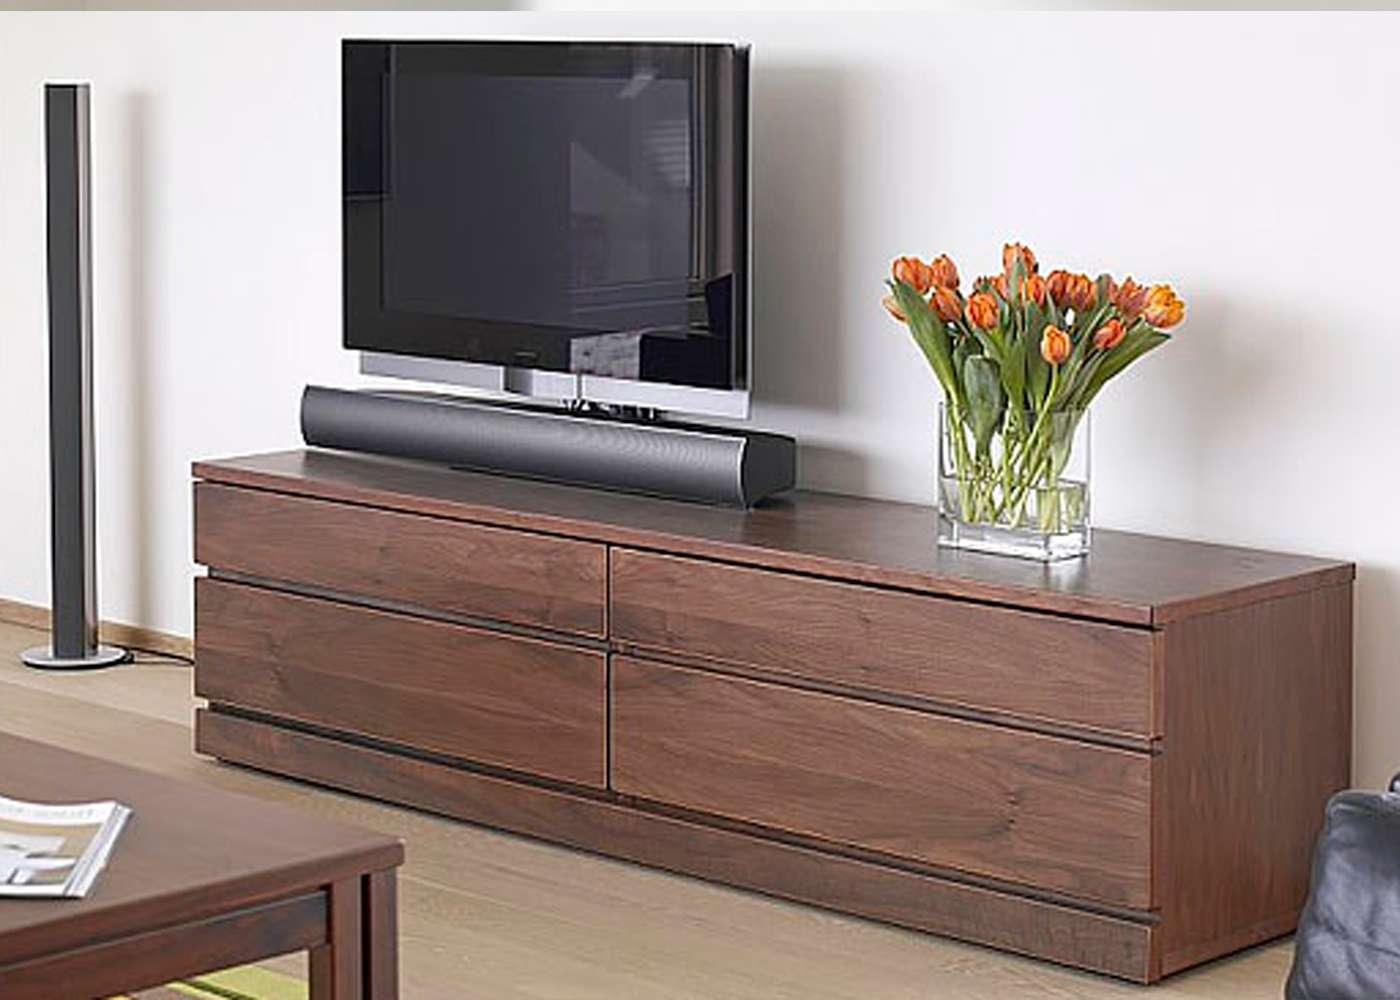 Skovby Sm87 Tv Cabinet In Walnut Finish 1 – Midfurn Furniture Within Walnut Tv Cabinets With Doors (View 11 of 20)